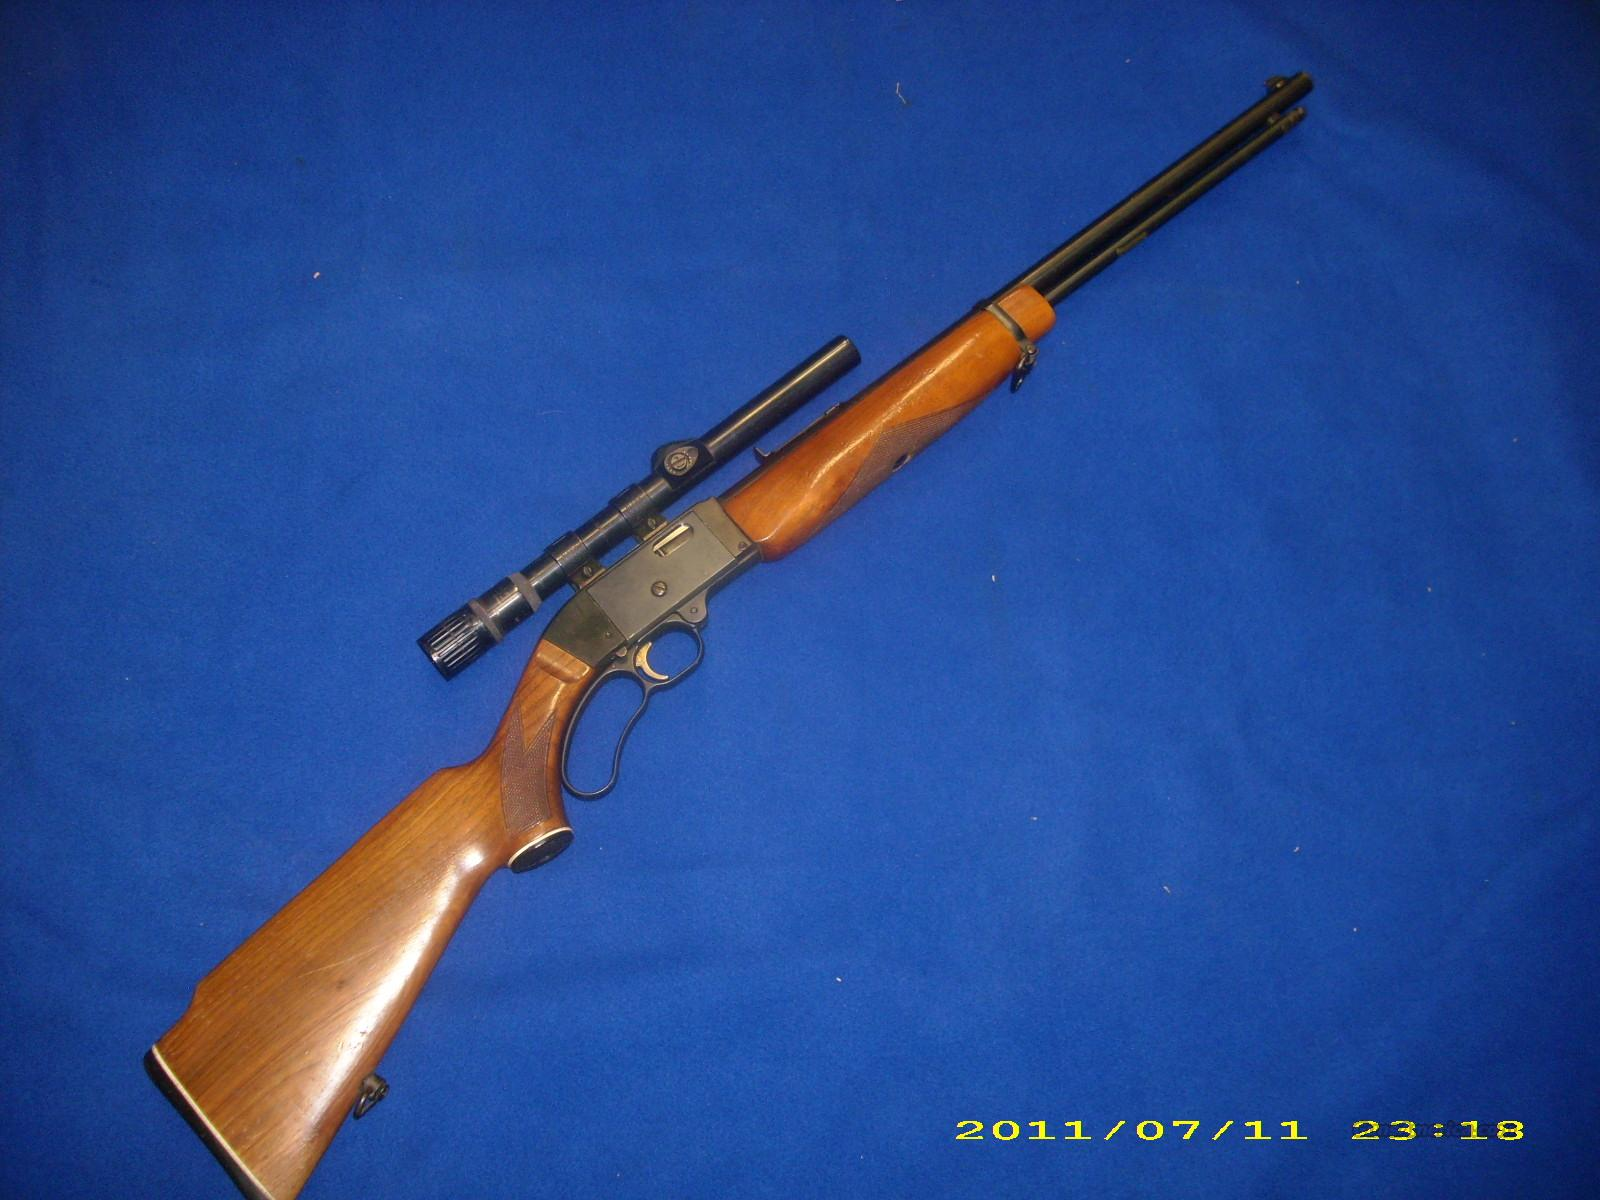 Mossberg 402 22 LR Lever Action  Guns > Rifles > Mossberg Rifles > Lever Action